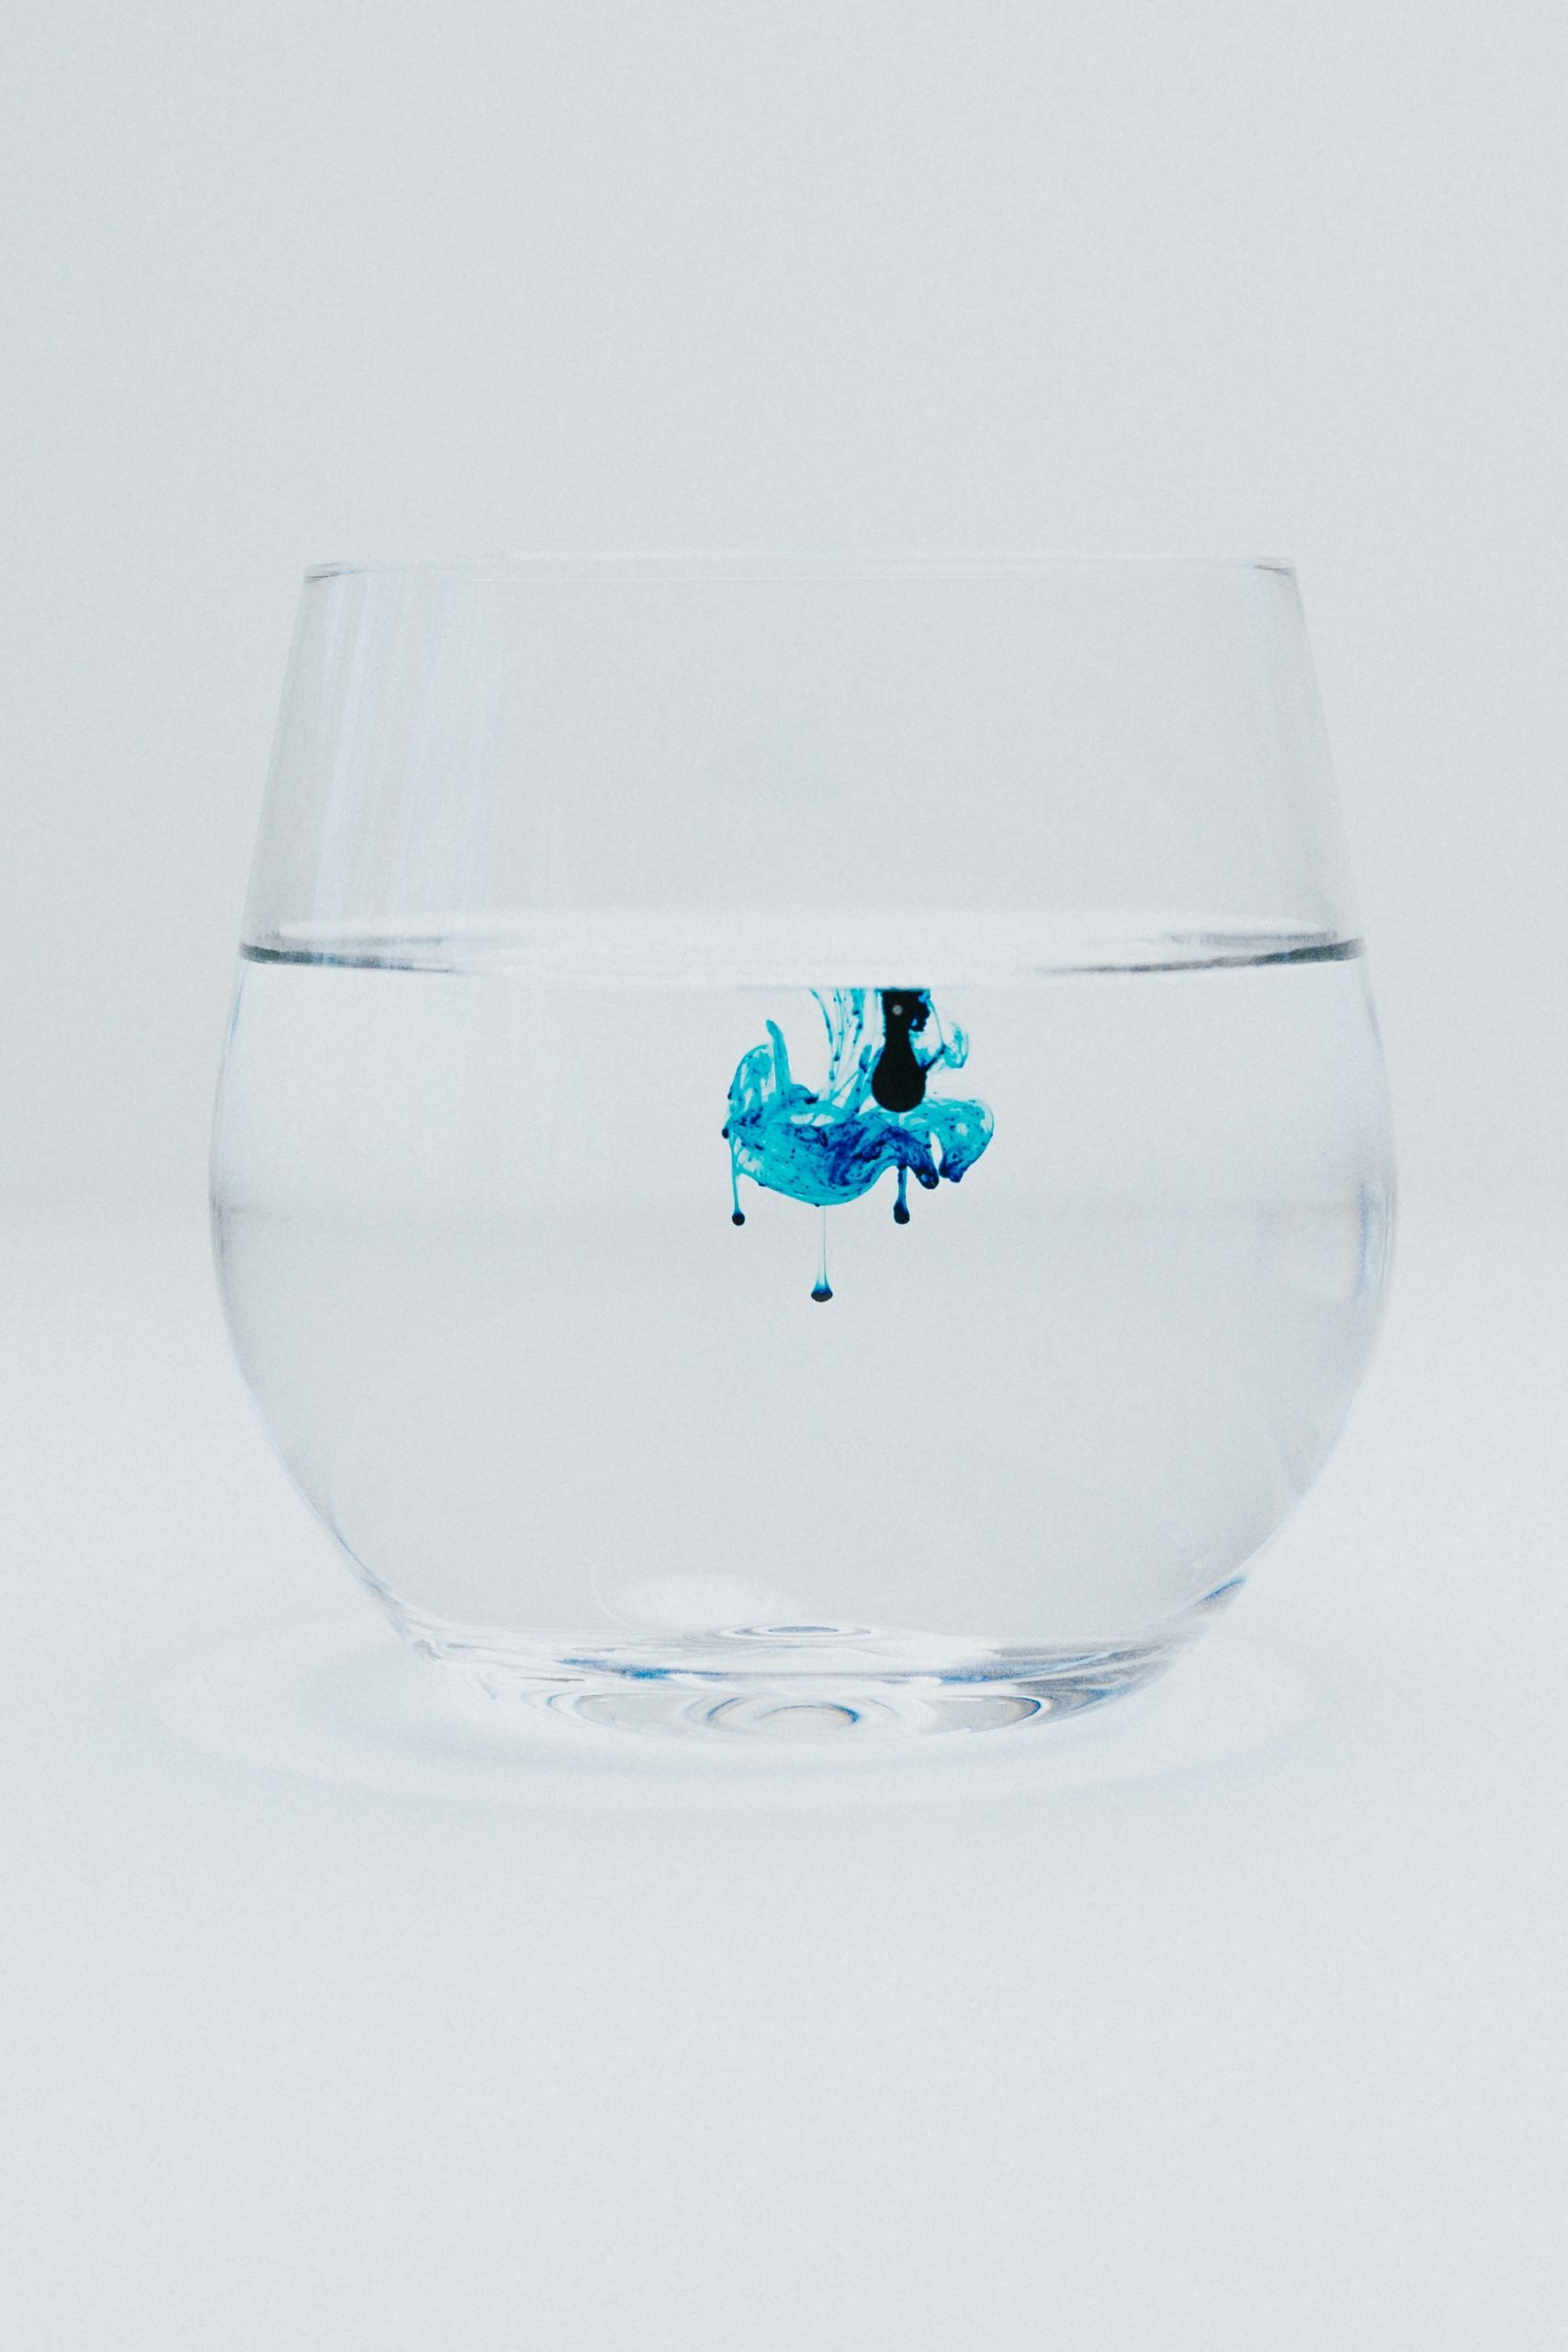 A drop of blue die in a water glass on a pure background